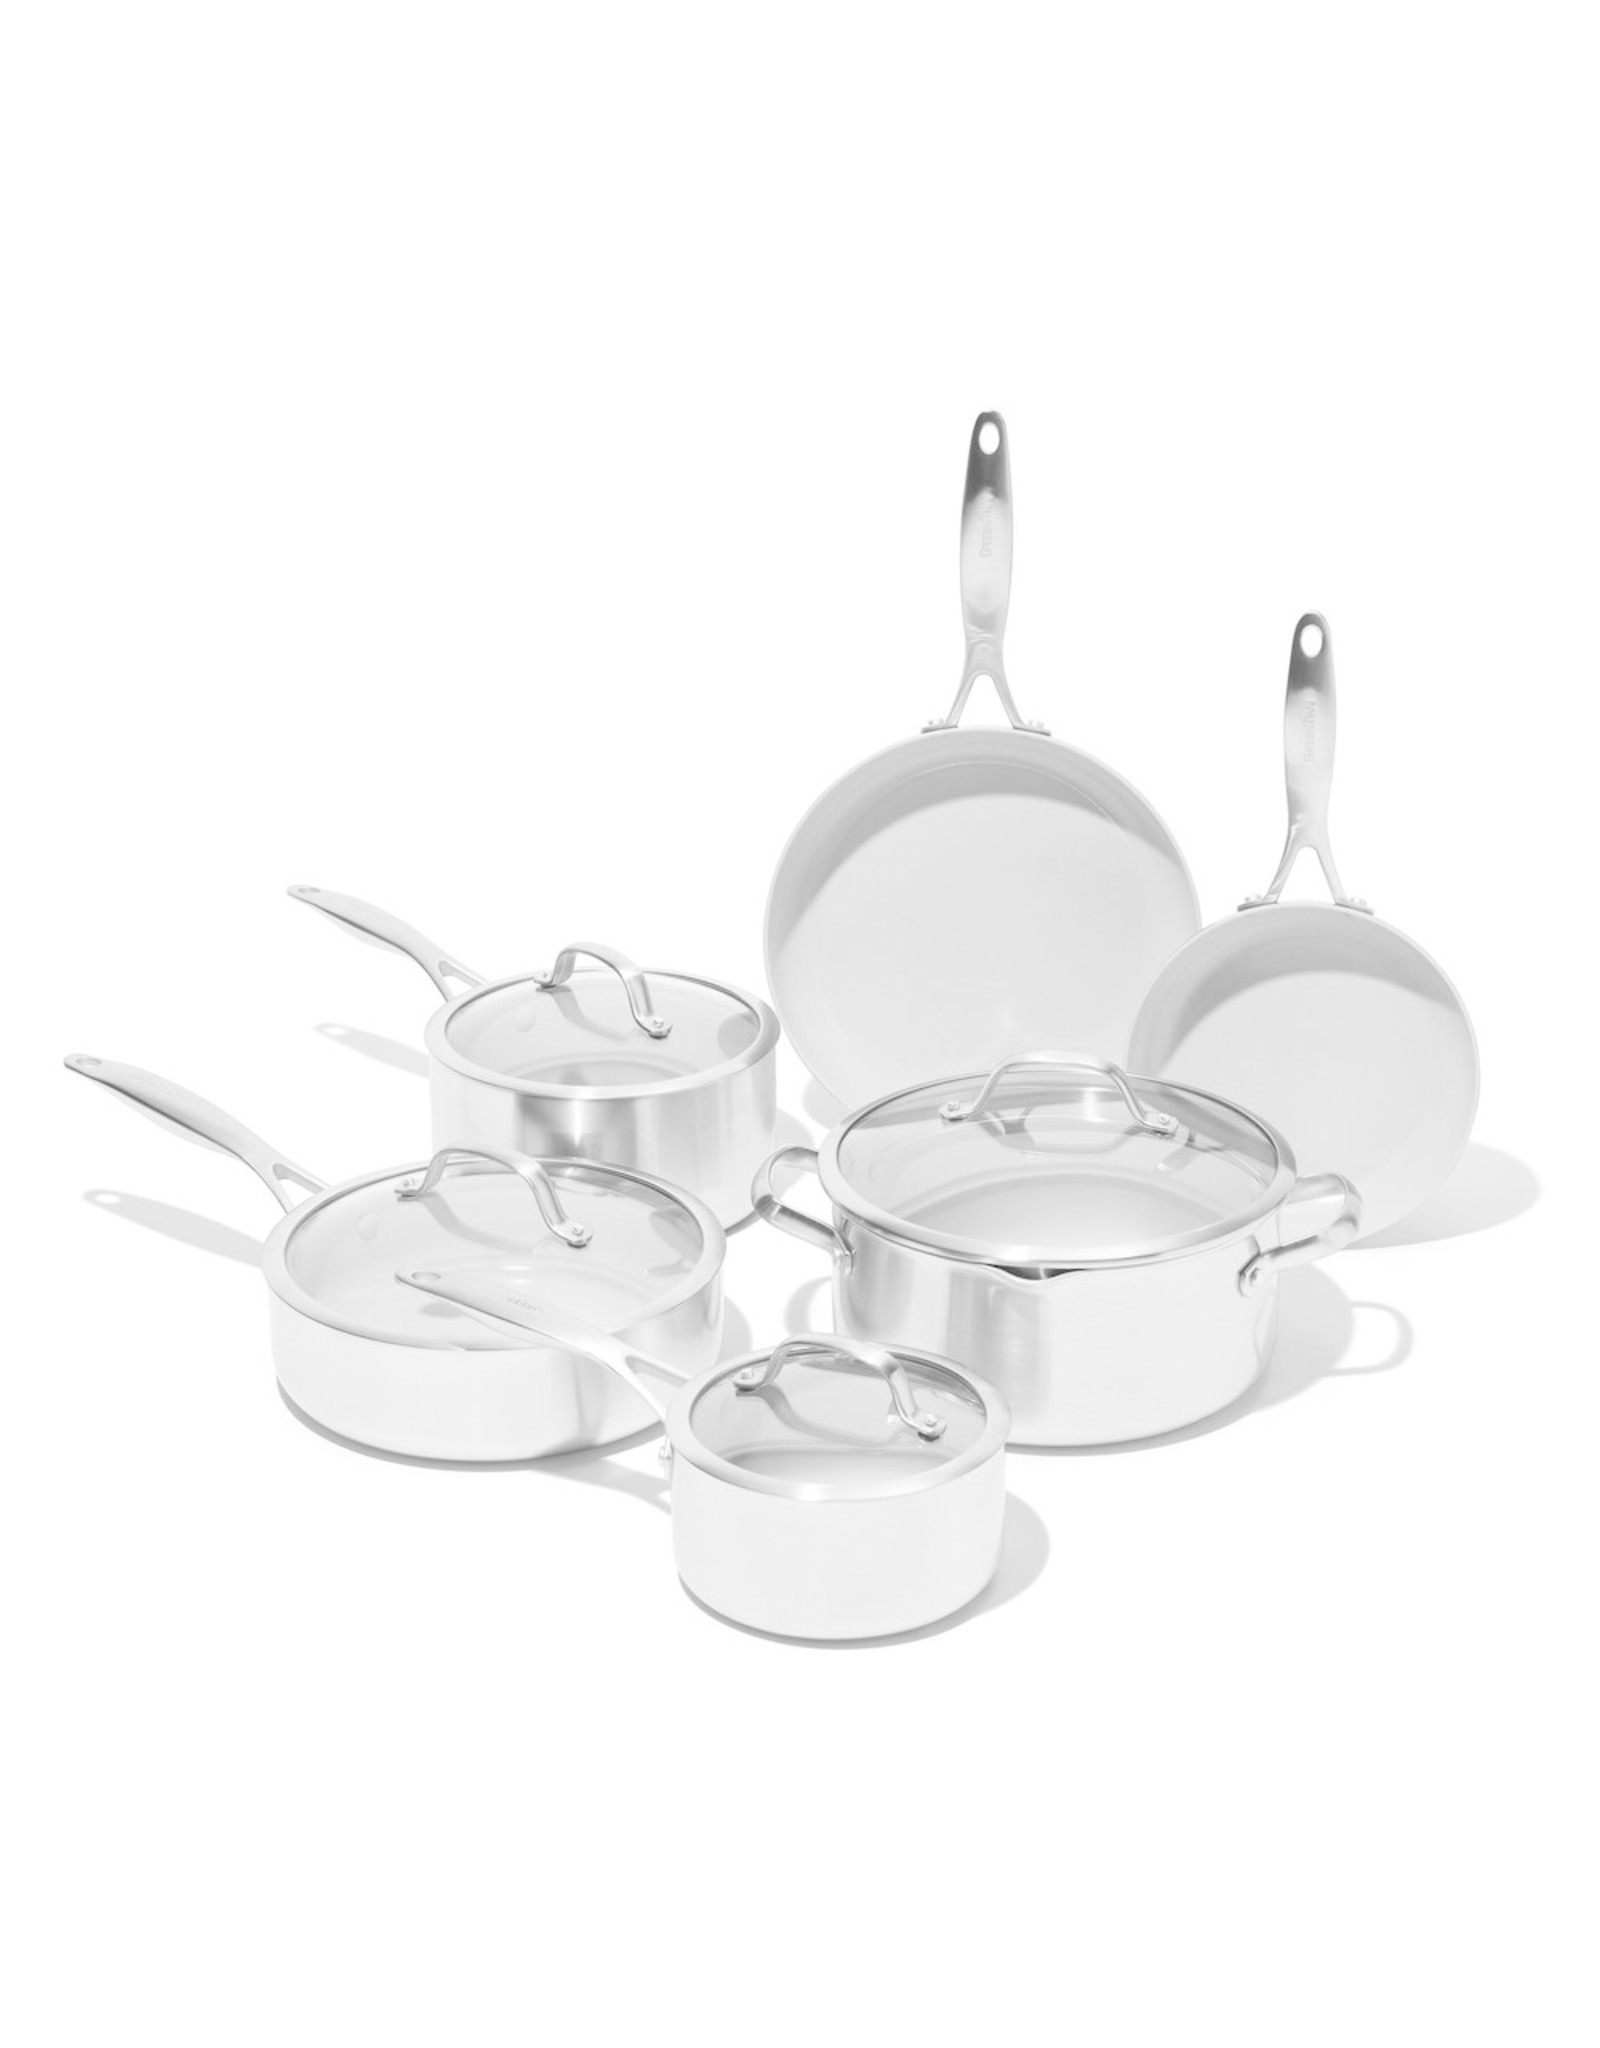 GreenPan GreenPan Venice Pro Ceramic Non-Stick Cookware, 10-Piece Set - Stainless Steel